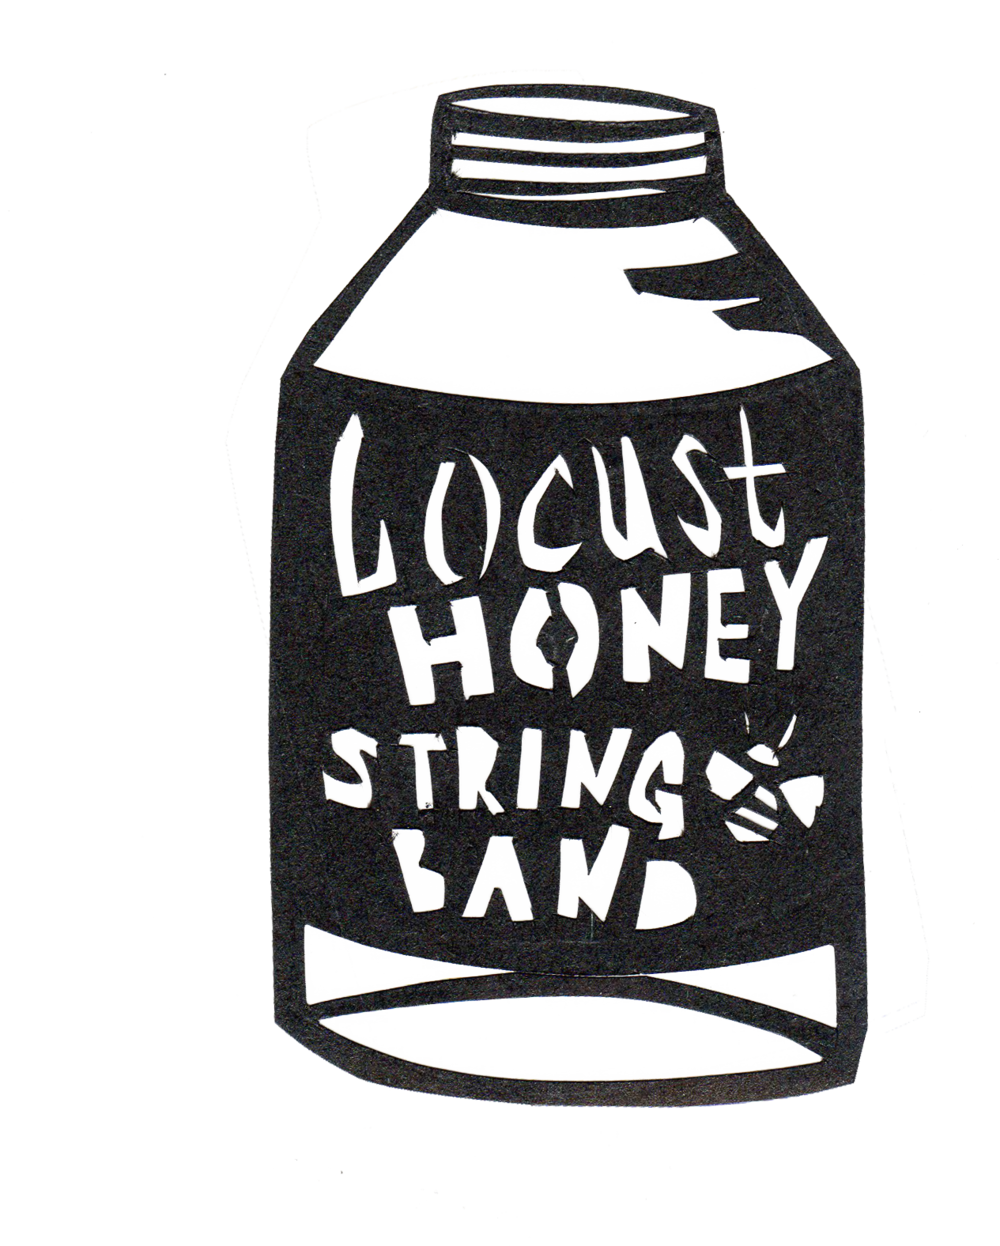 locust honey070.png